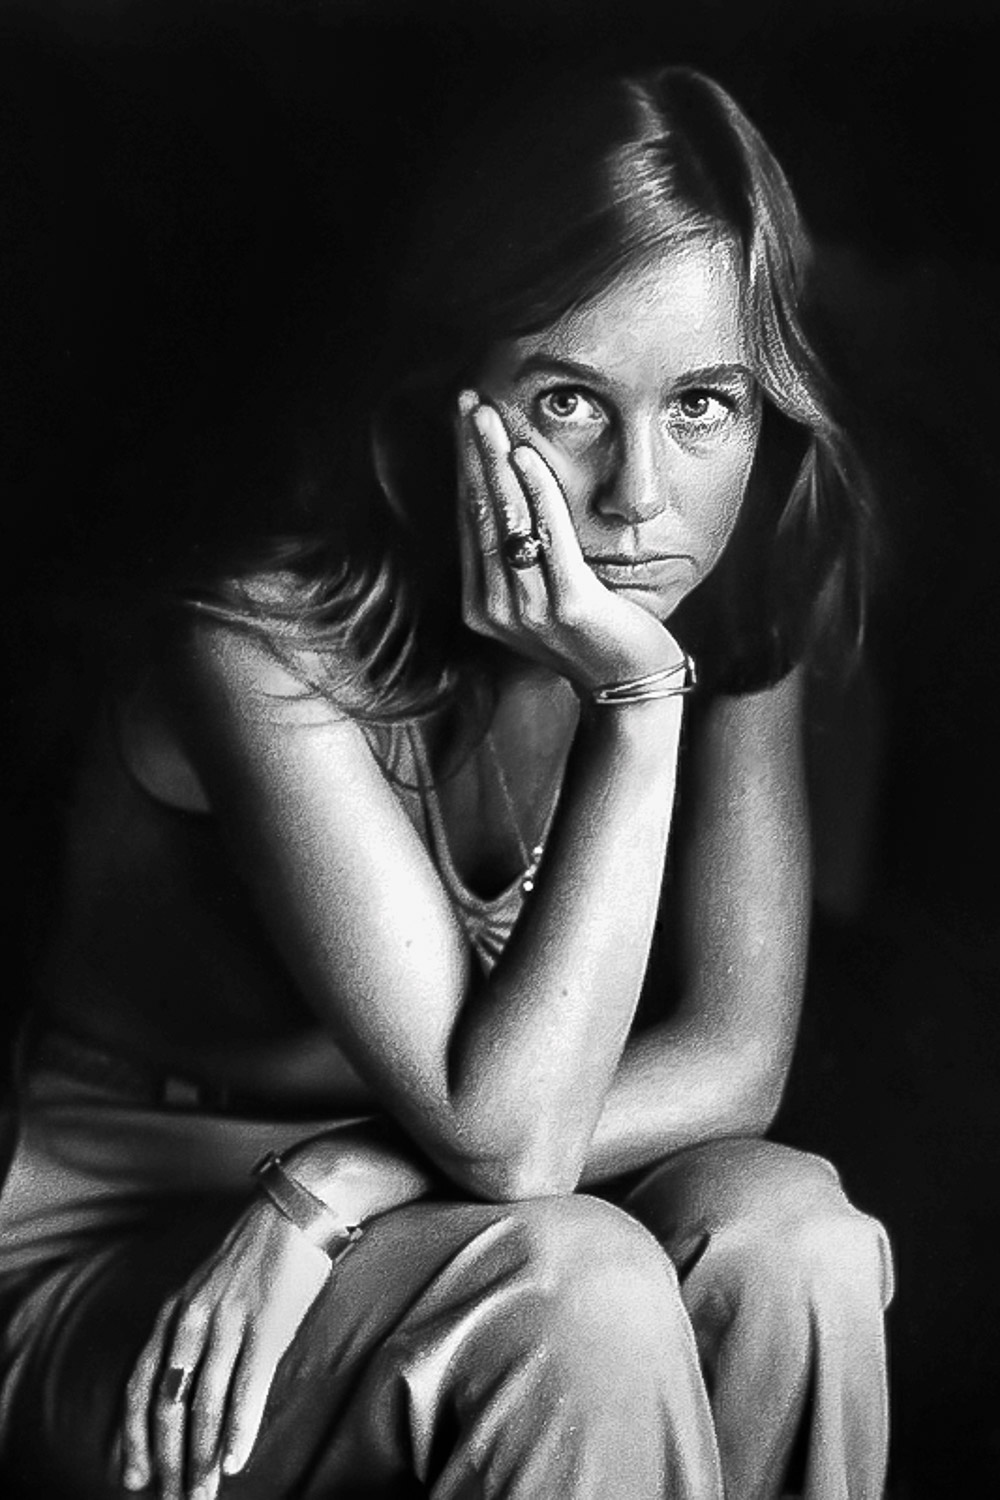 Woman-Posing-With-Long-Hair-Hand-On-Chin-Donna-BW.jpg